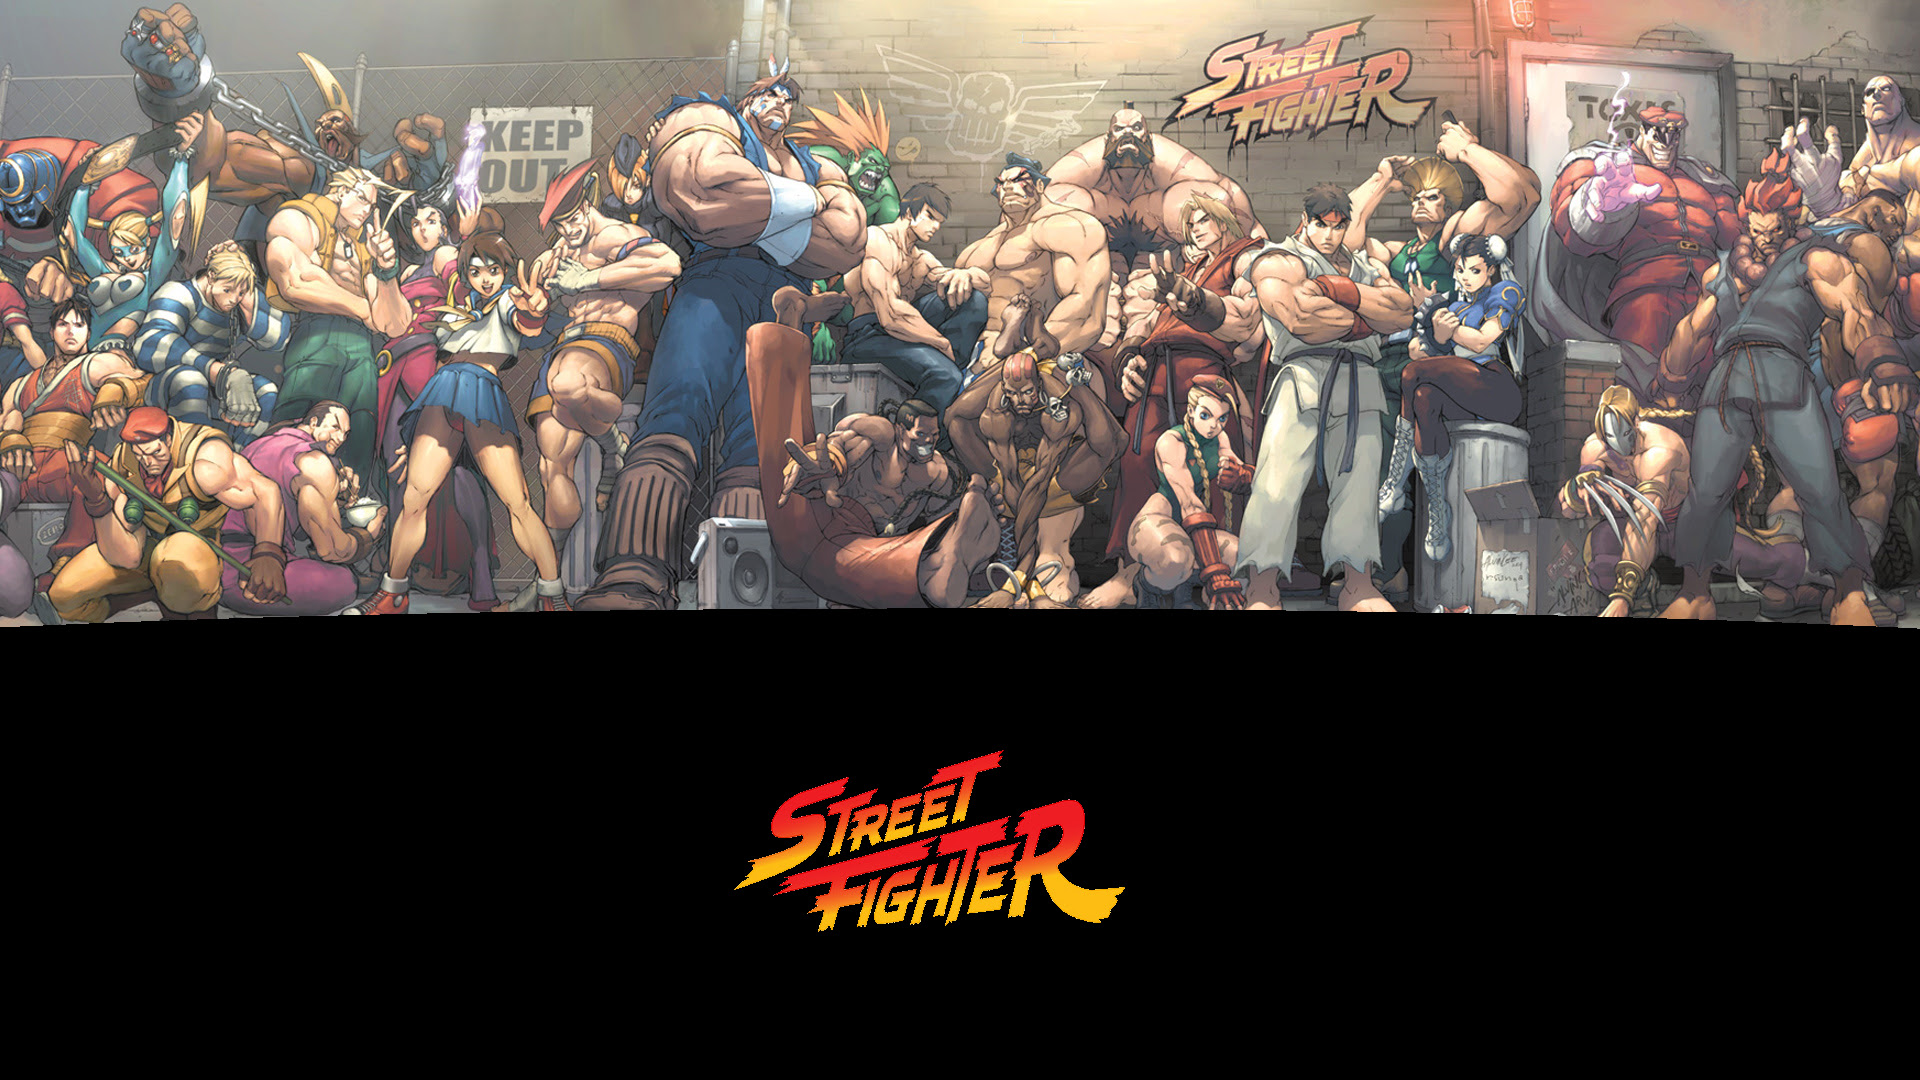 Street Fighter S Wallpaper 1920x1080 66712